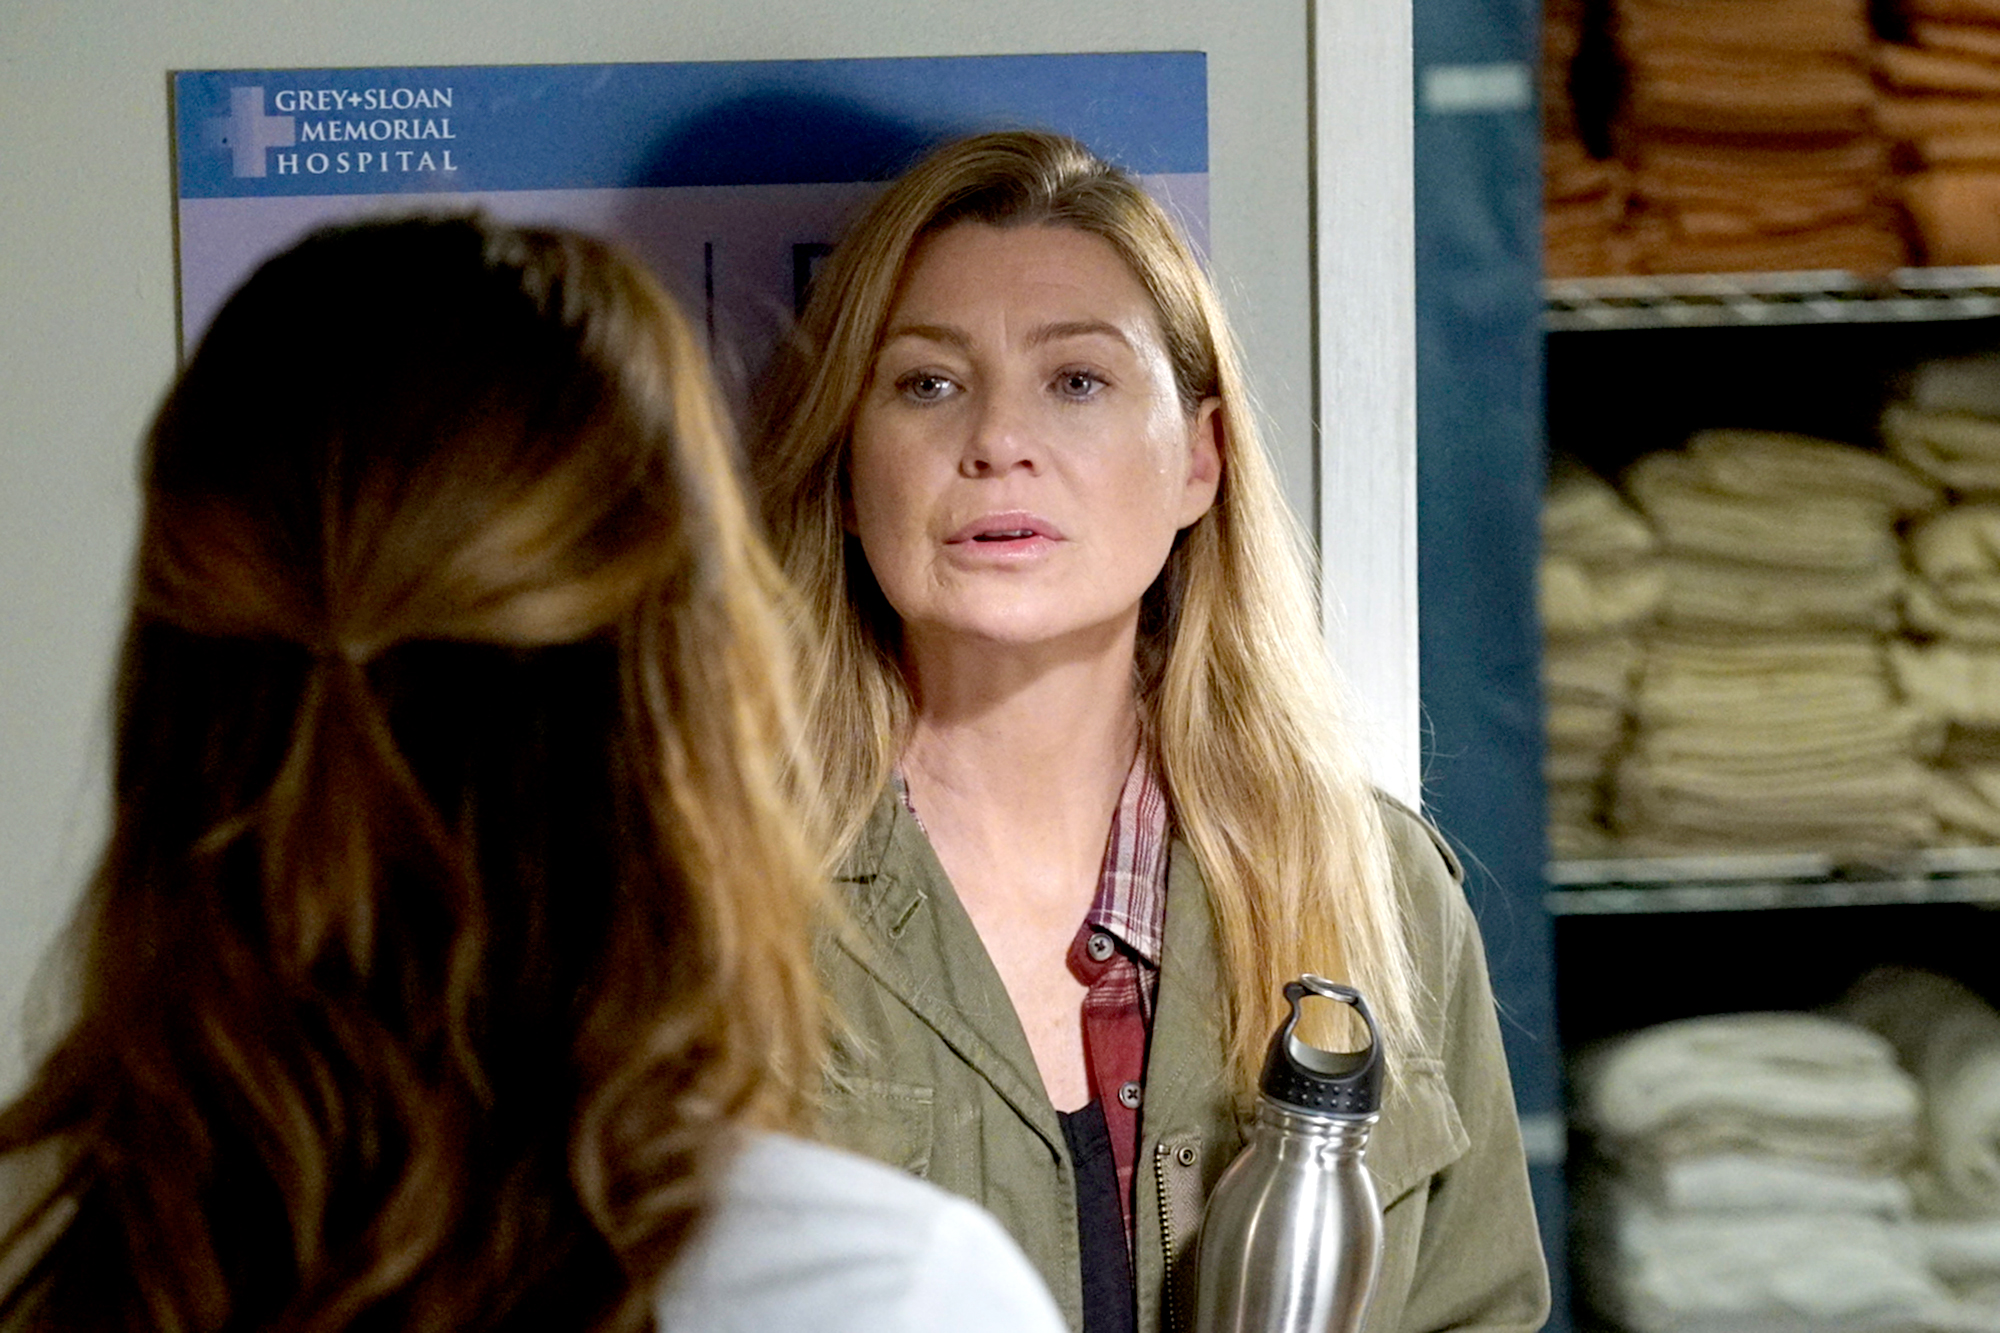 'Grey's Anatomy': Amelia and Link Make a Major Decision